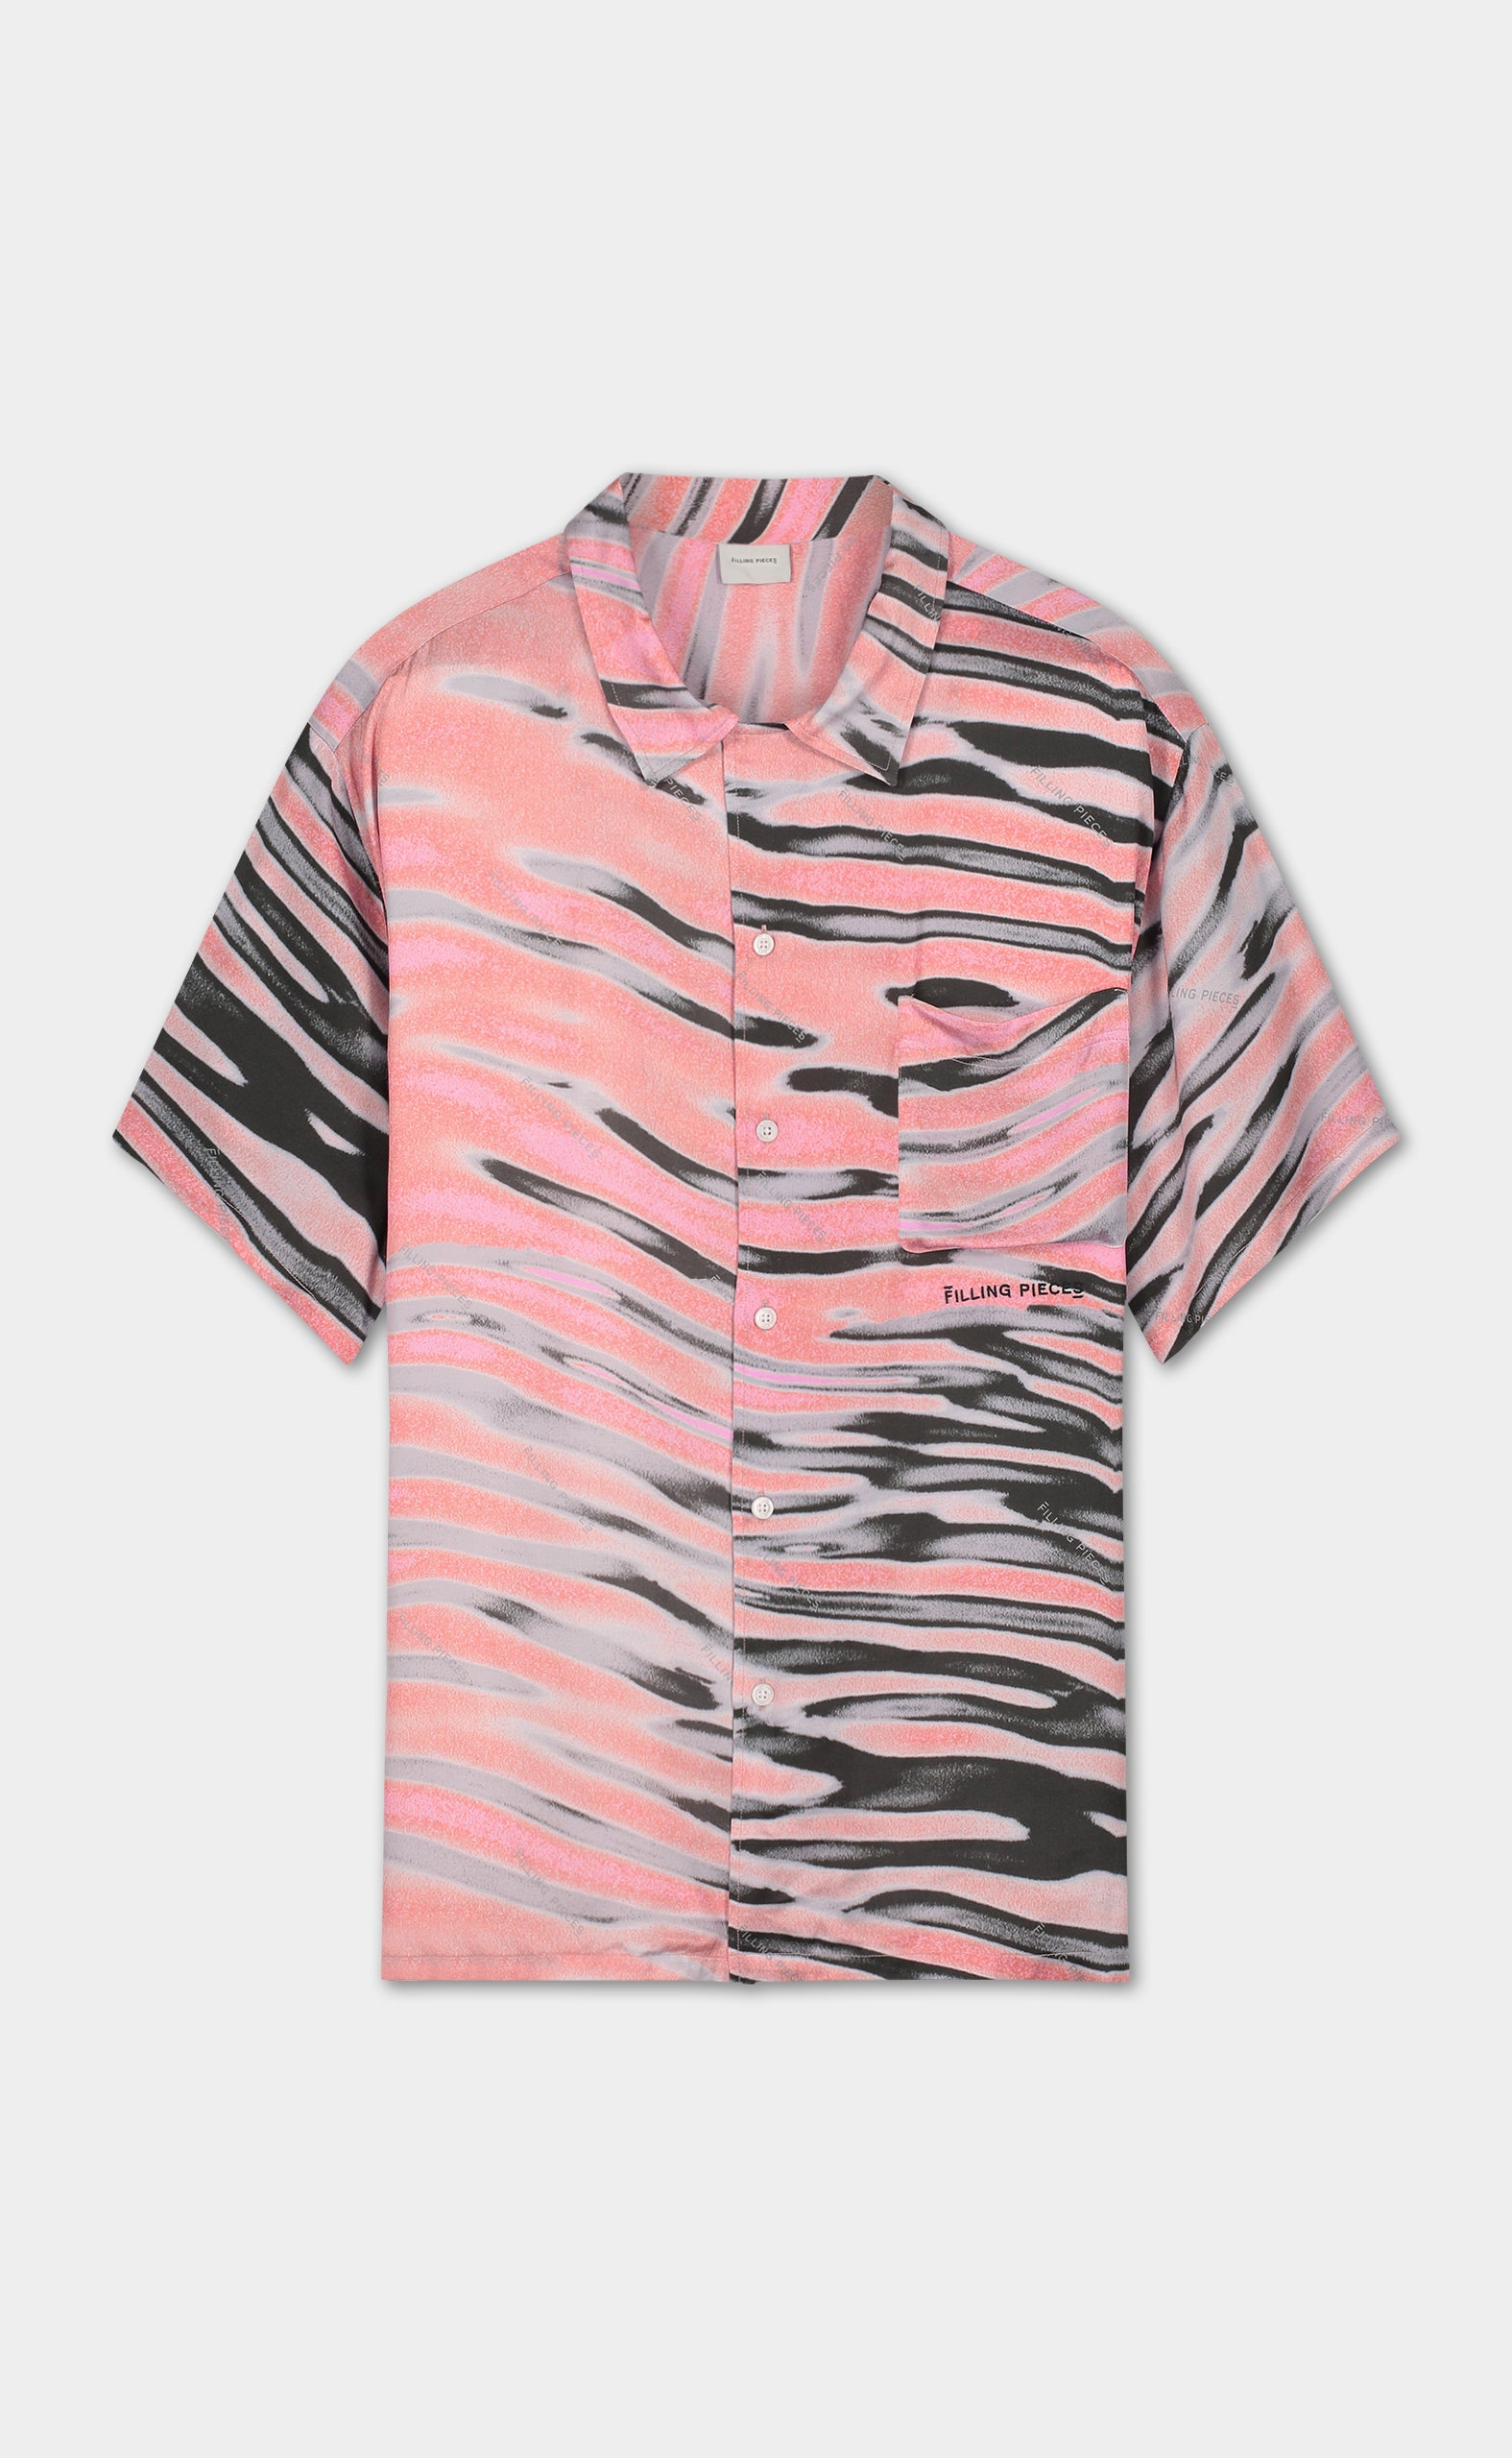 Printed Resort Shirt Pink Wavey